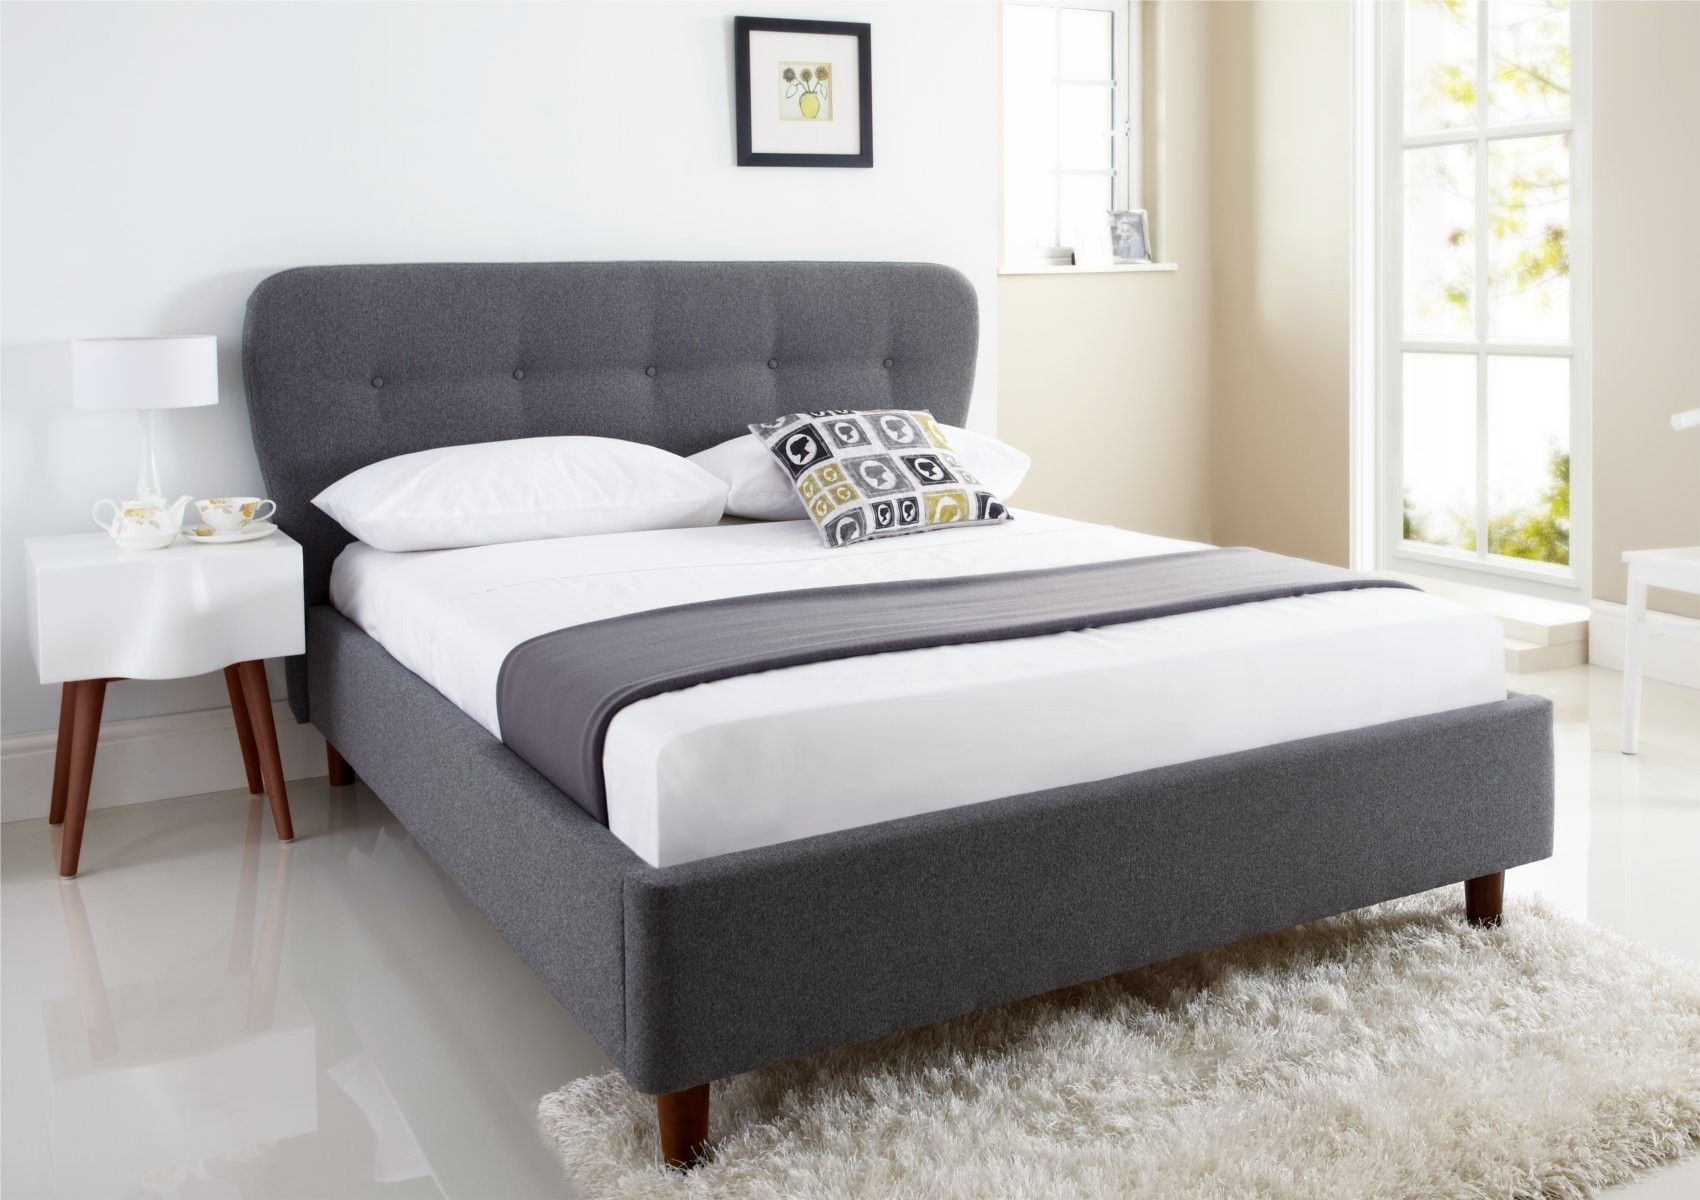 King Single Bed Ikea Oslo Upholstered Bed Frame Upholstered Beds Beds